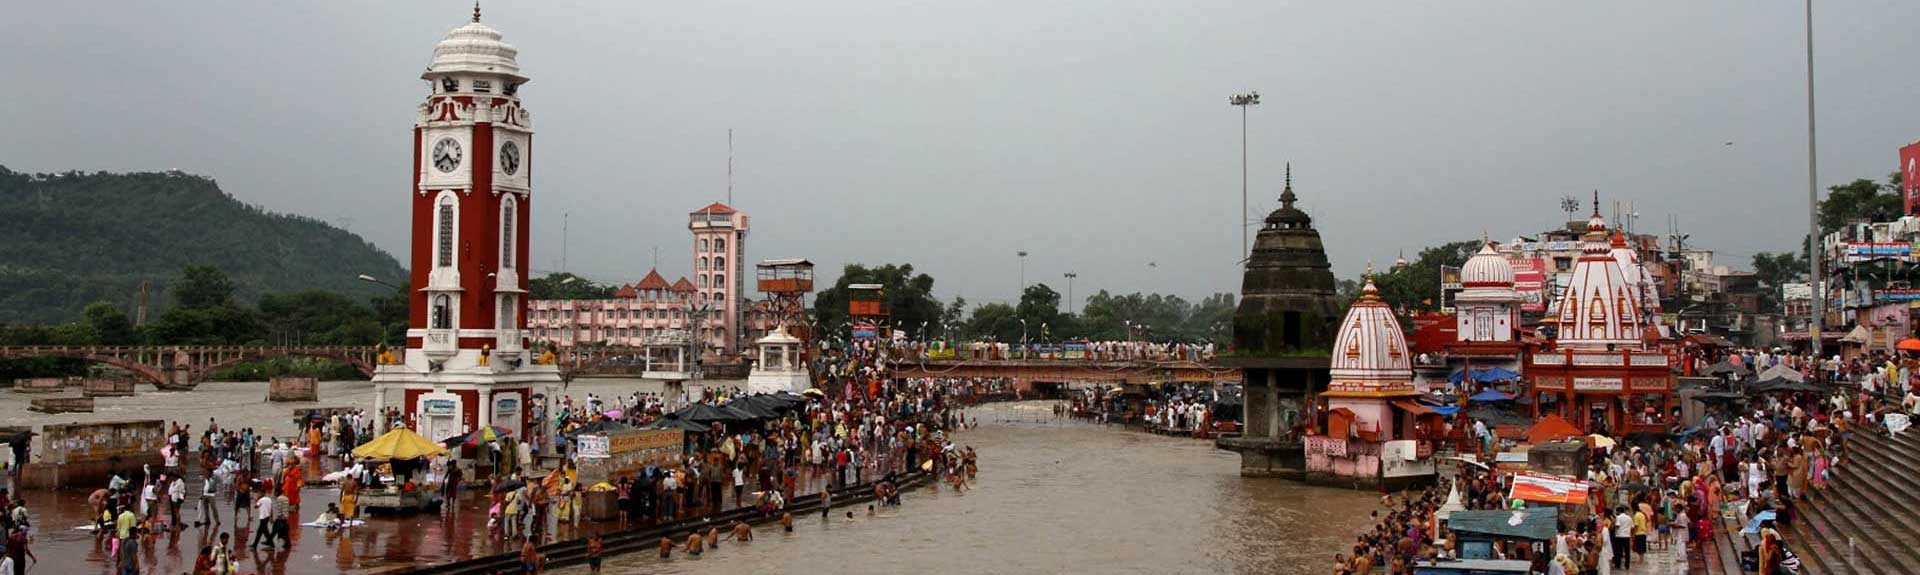 Tempo traveller for chardham yatra from haridwar